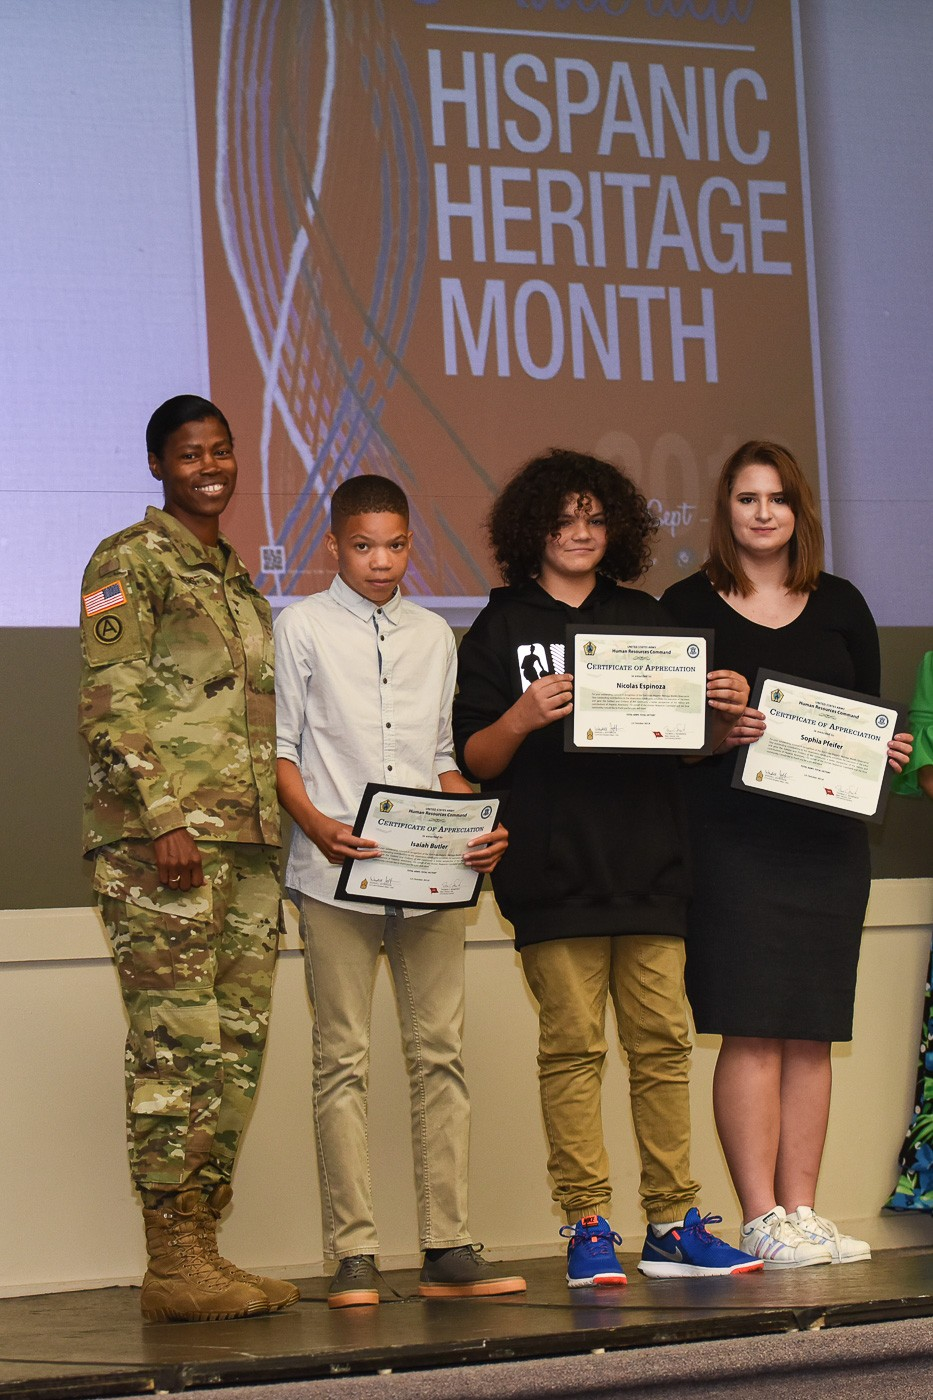 fort knox community celebrates national hispanic heritage month certificates of appreciation for writing winning essays in a competition highlighting the accomplishments and contributions of hispanic americans